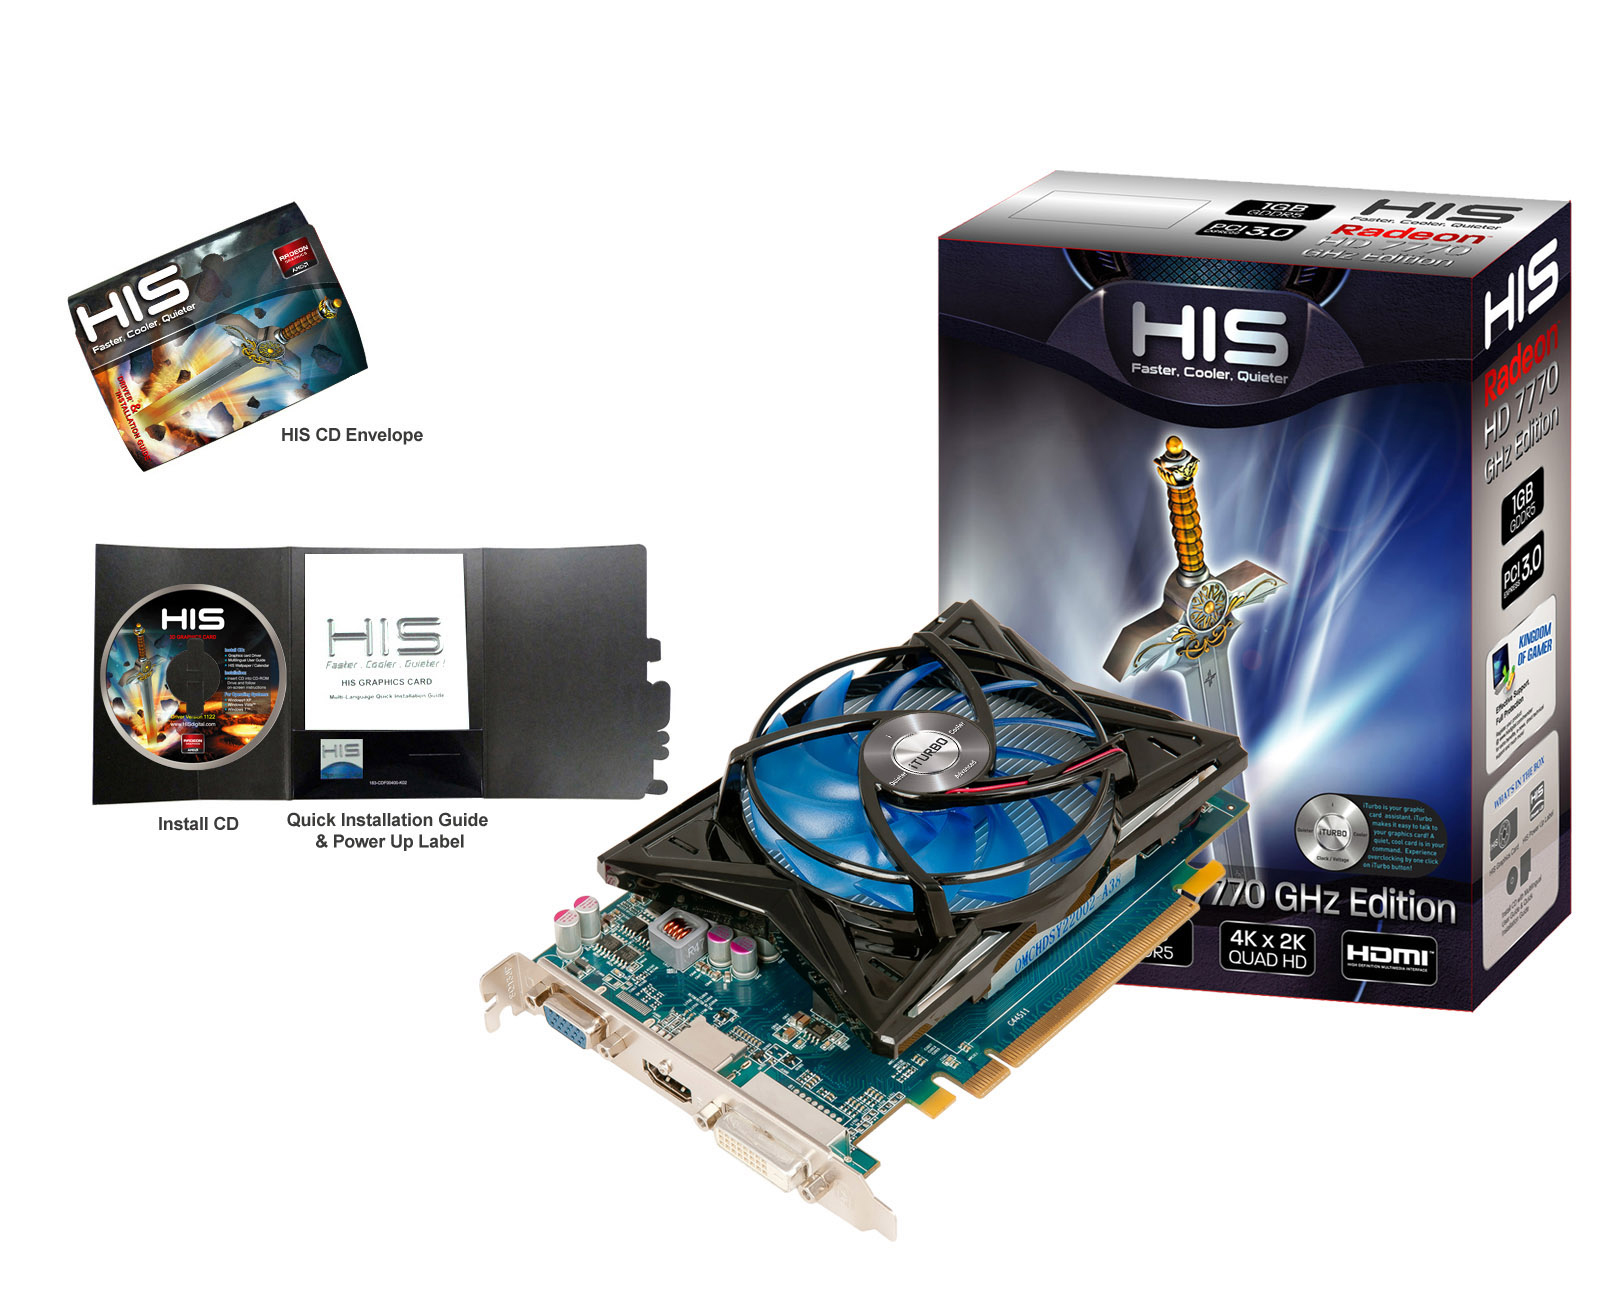 HIS 7770 iCooler 1GB GDDR5 PCI-E DVI/HDMI/VGA < HD 7700 Series